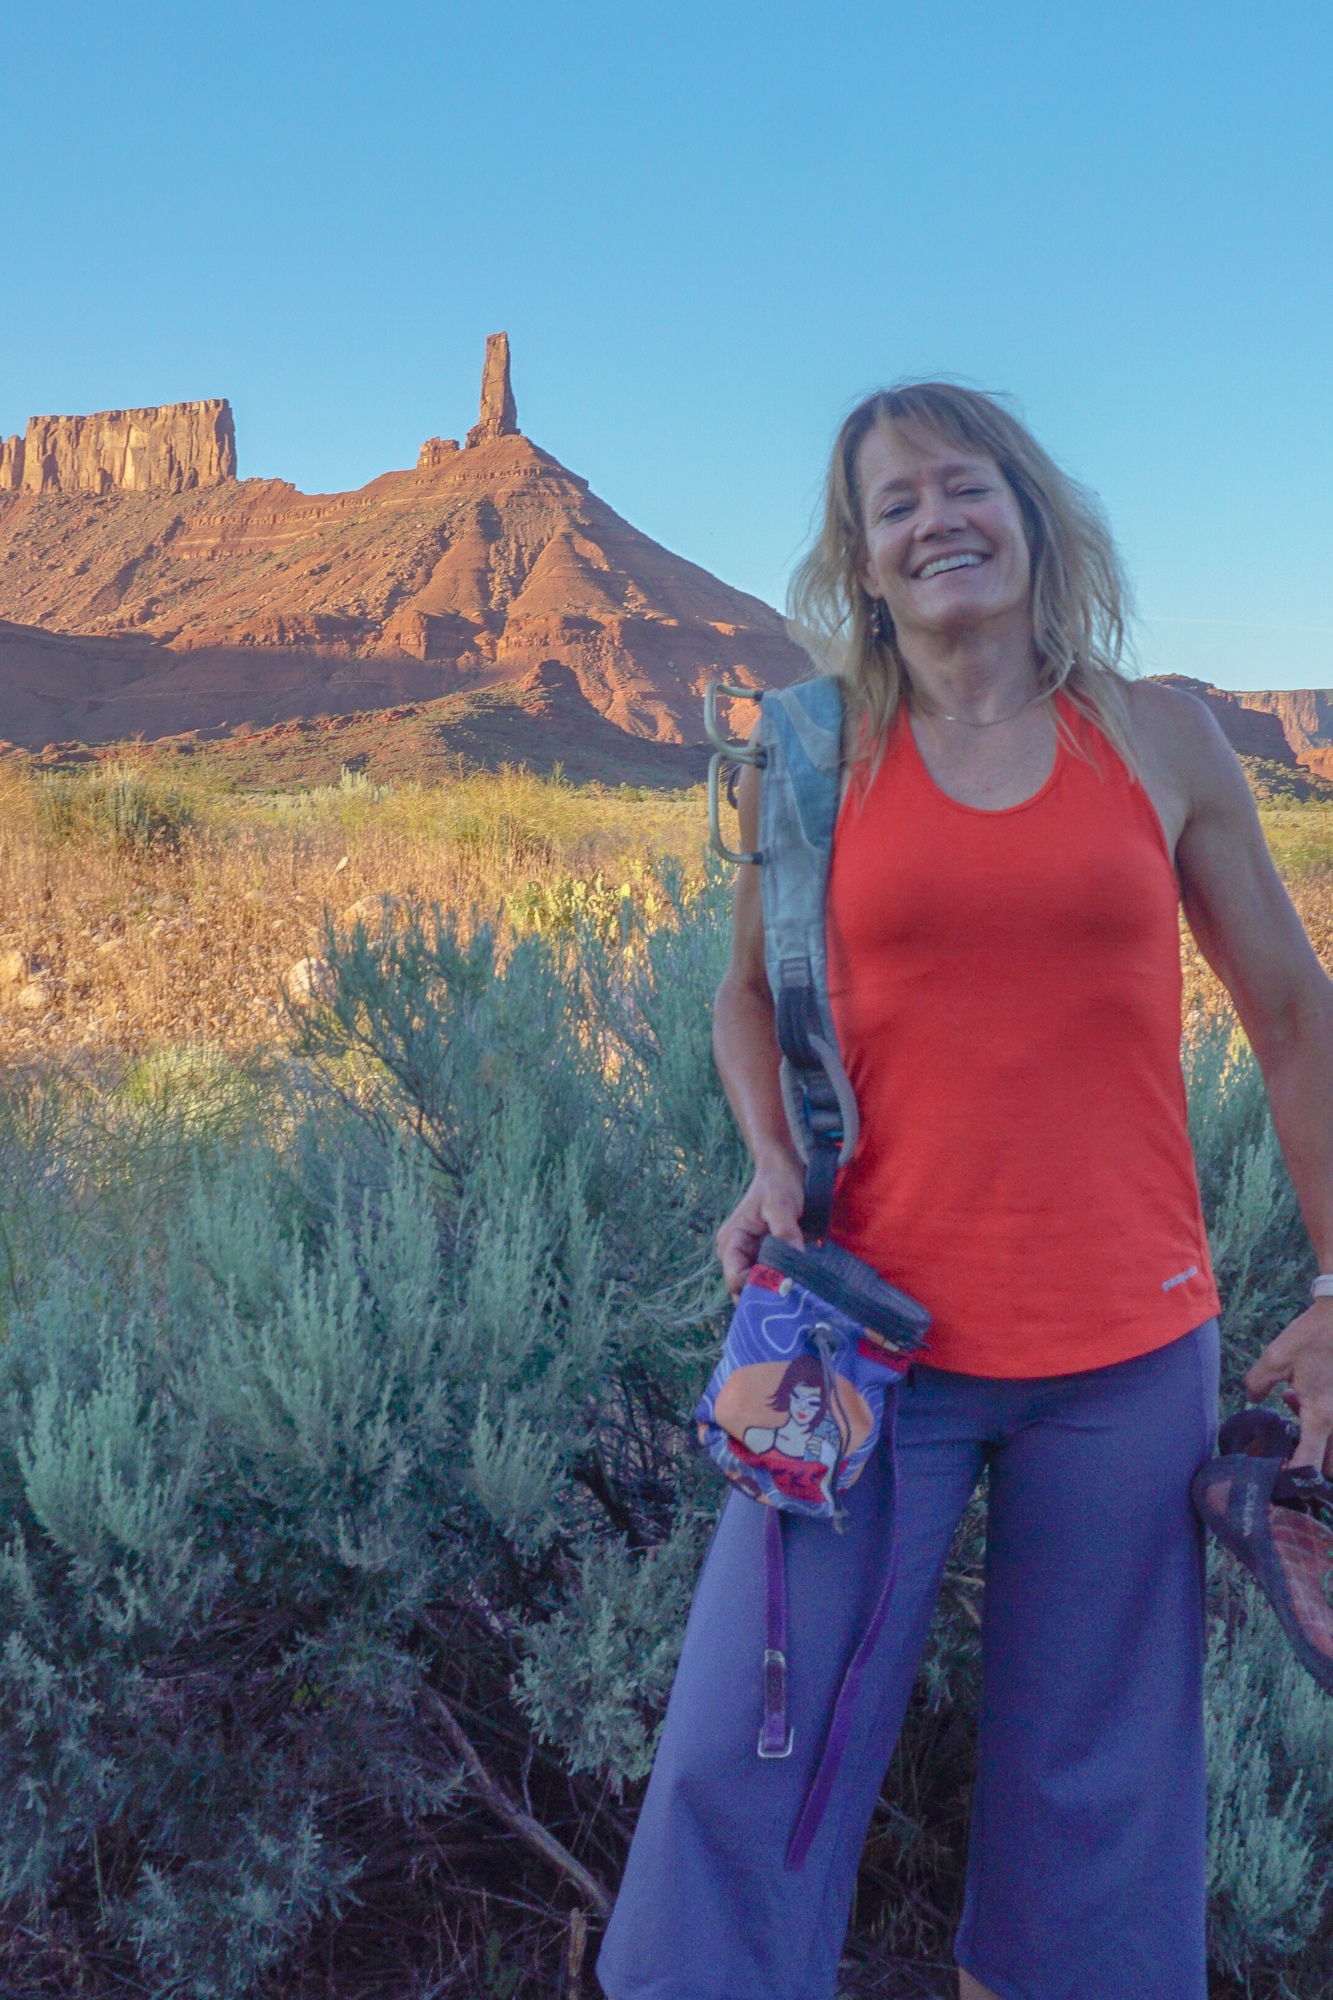 Kitty Calhoun, Co-Owner Chicks Climbing and Skiing, in her favorite summer climbing top: Patagonia Fleur tank top.©Kitty Calhoun Collection